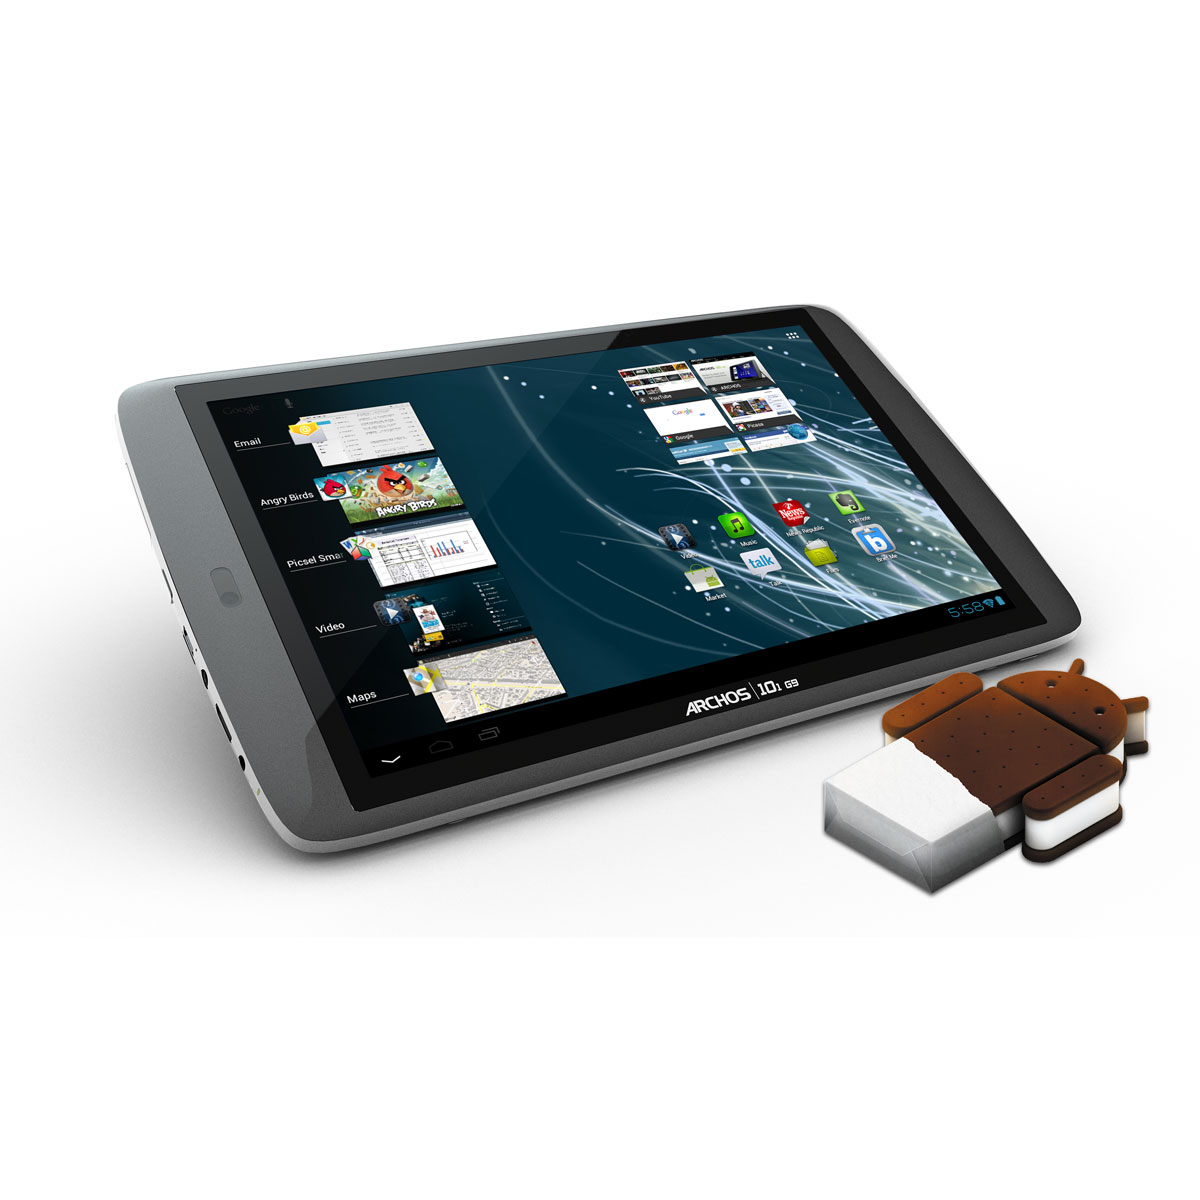 "Tablette tactile Archos 101 G9 Turbo ICS 8 Go Tablette Internet - OMAP 4 Smart multi-core 1.5 GHz 8 Go 10"" LCD tactile Wi-Fi N/Bluetooth Webcam Android 4.0"